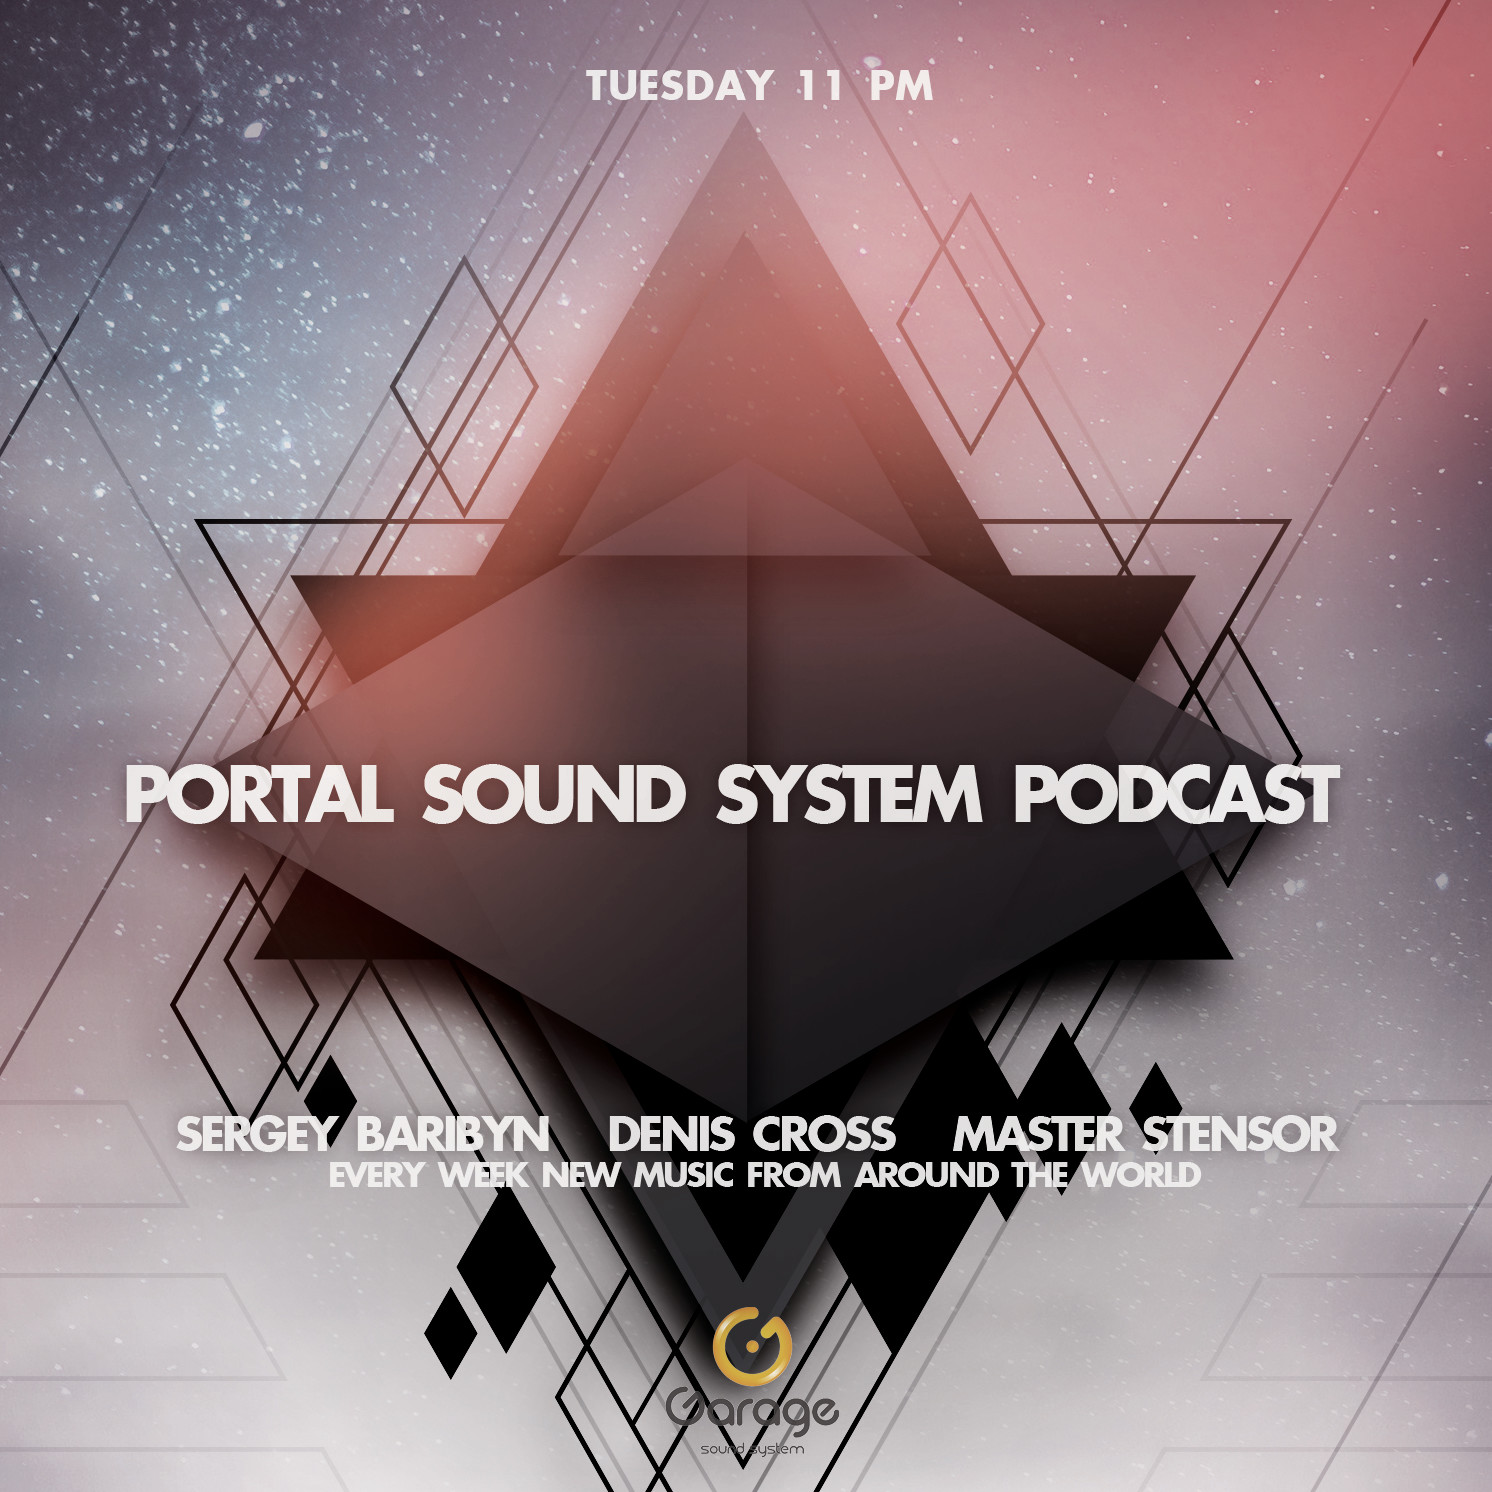 PORTAL SOUND SYSTEM (Russian Federation)